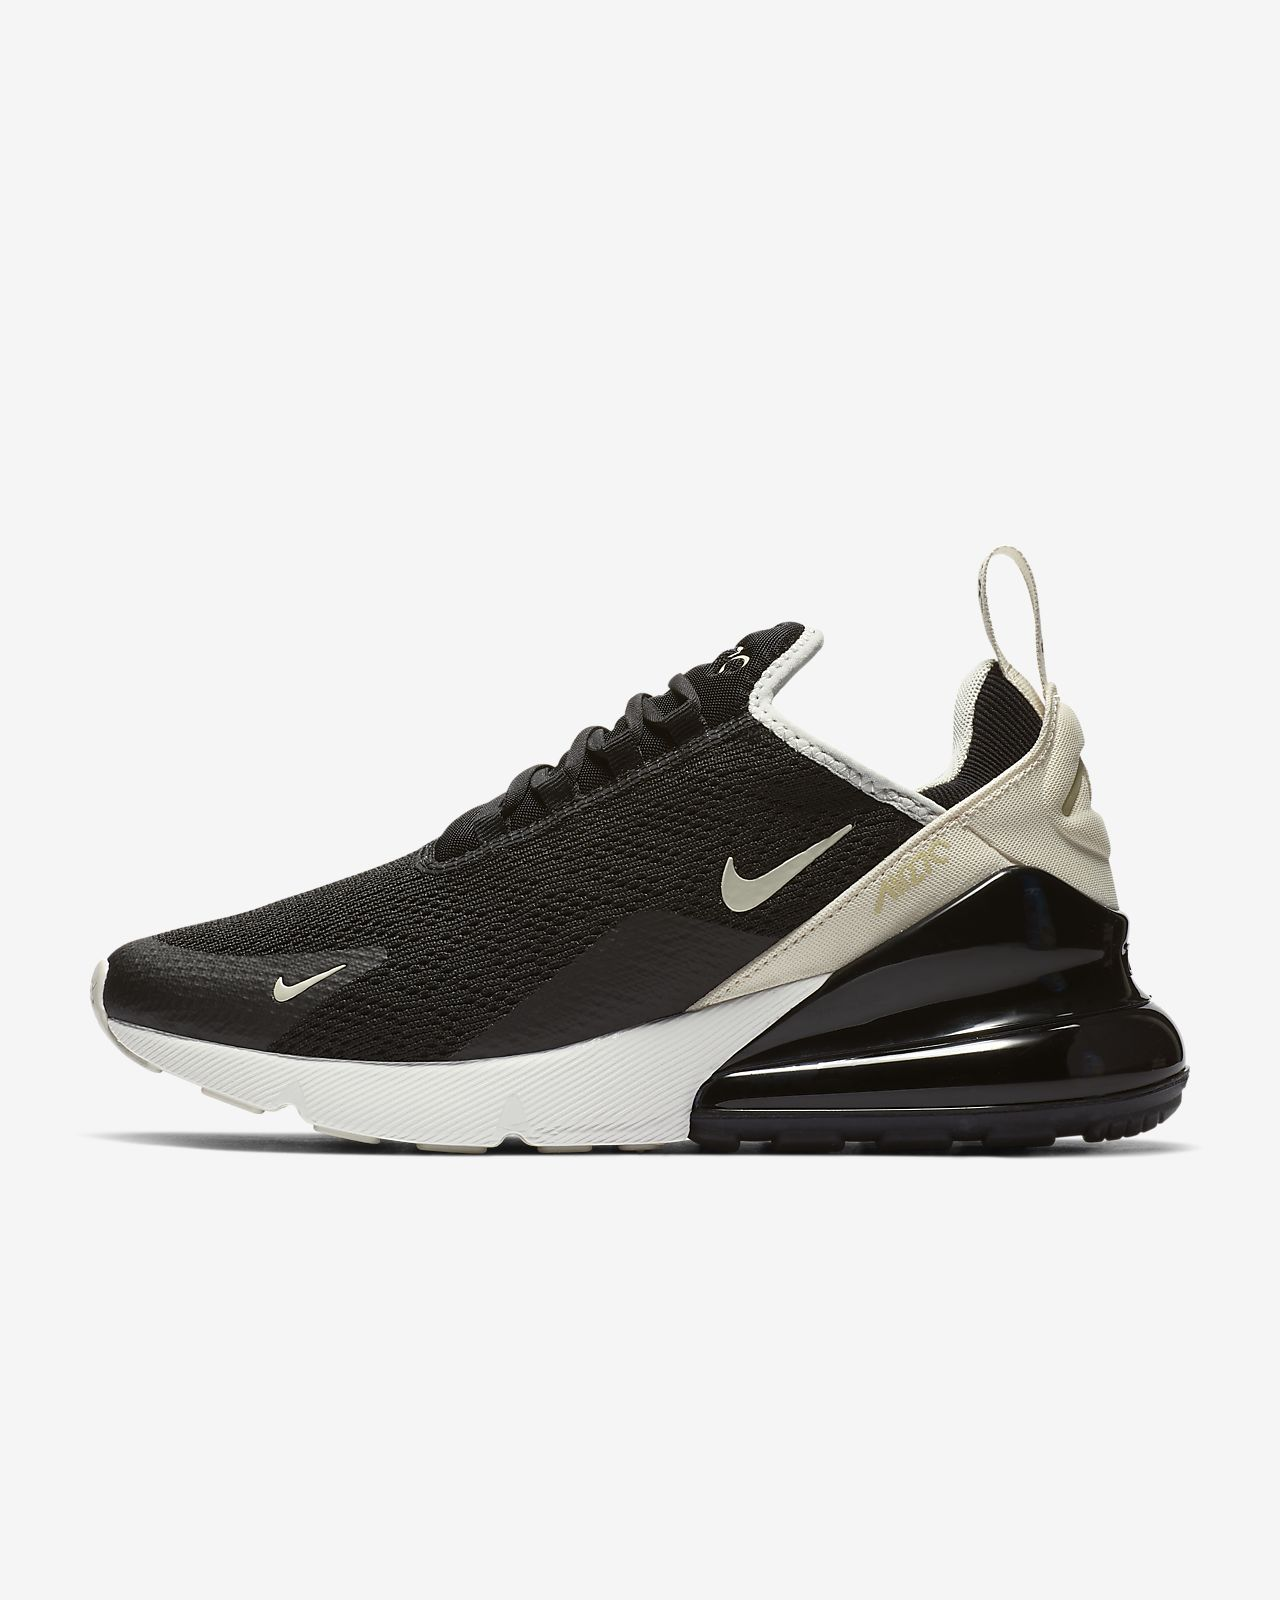 3a0ca50a88b4 Nike Air Max 270 Women s Shoe. Nike.com NO